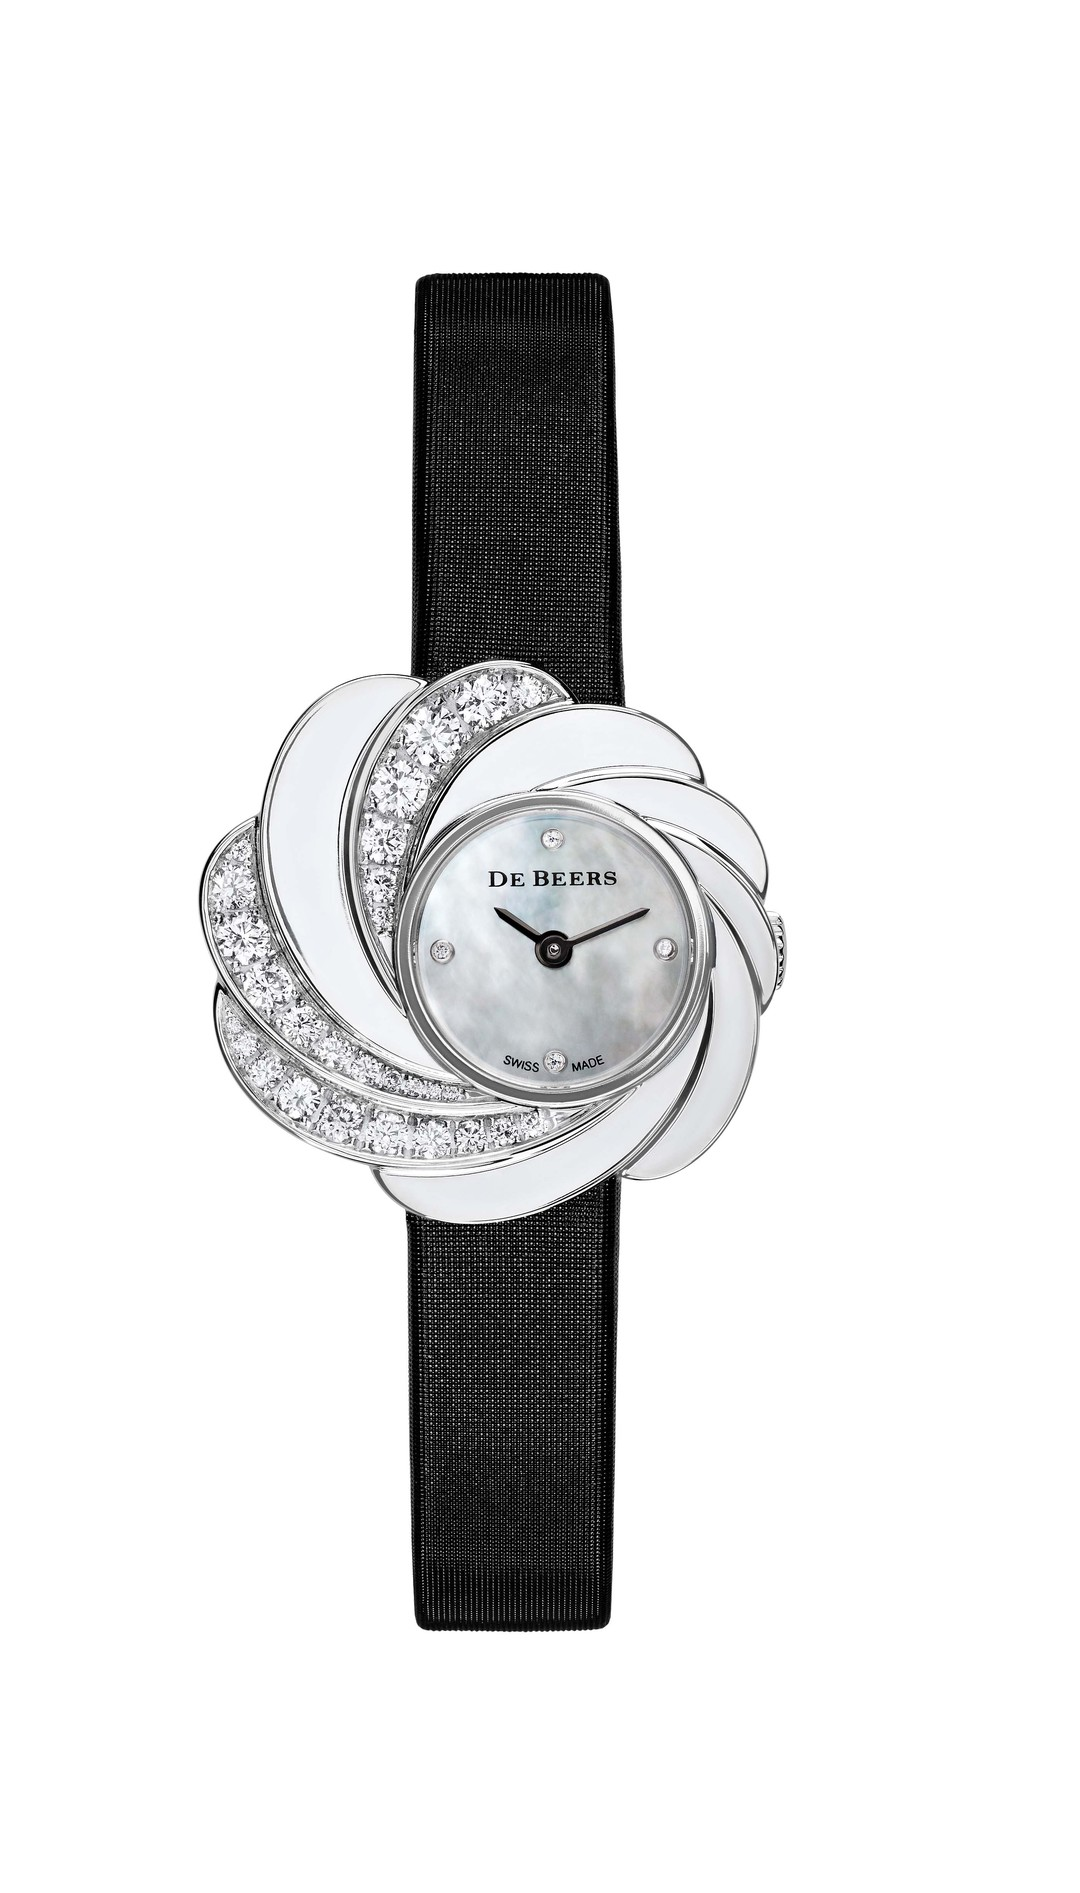 De Beers Aria diamond watch set with 0.91ct round brilliant diamonds in white gold, with a white mother-of-pearl dial and black satin strap (£15,800).